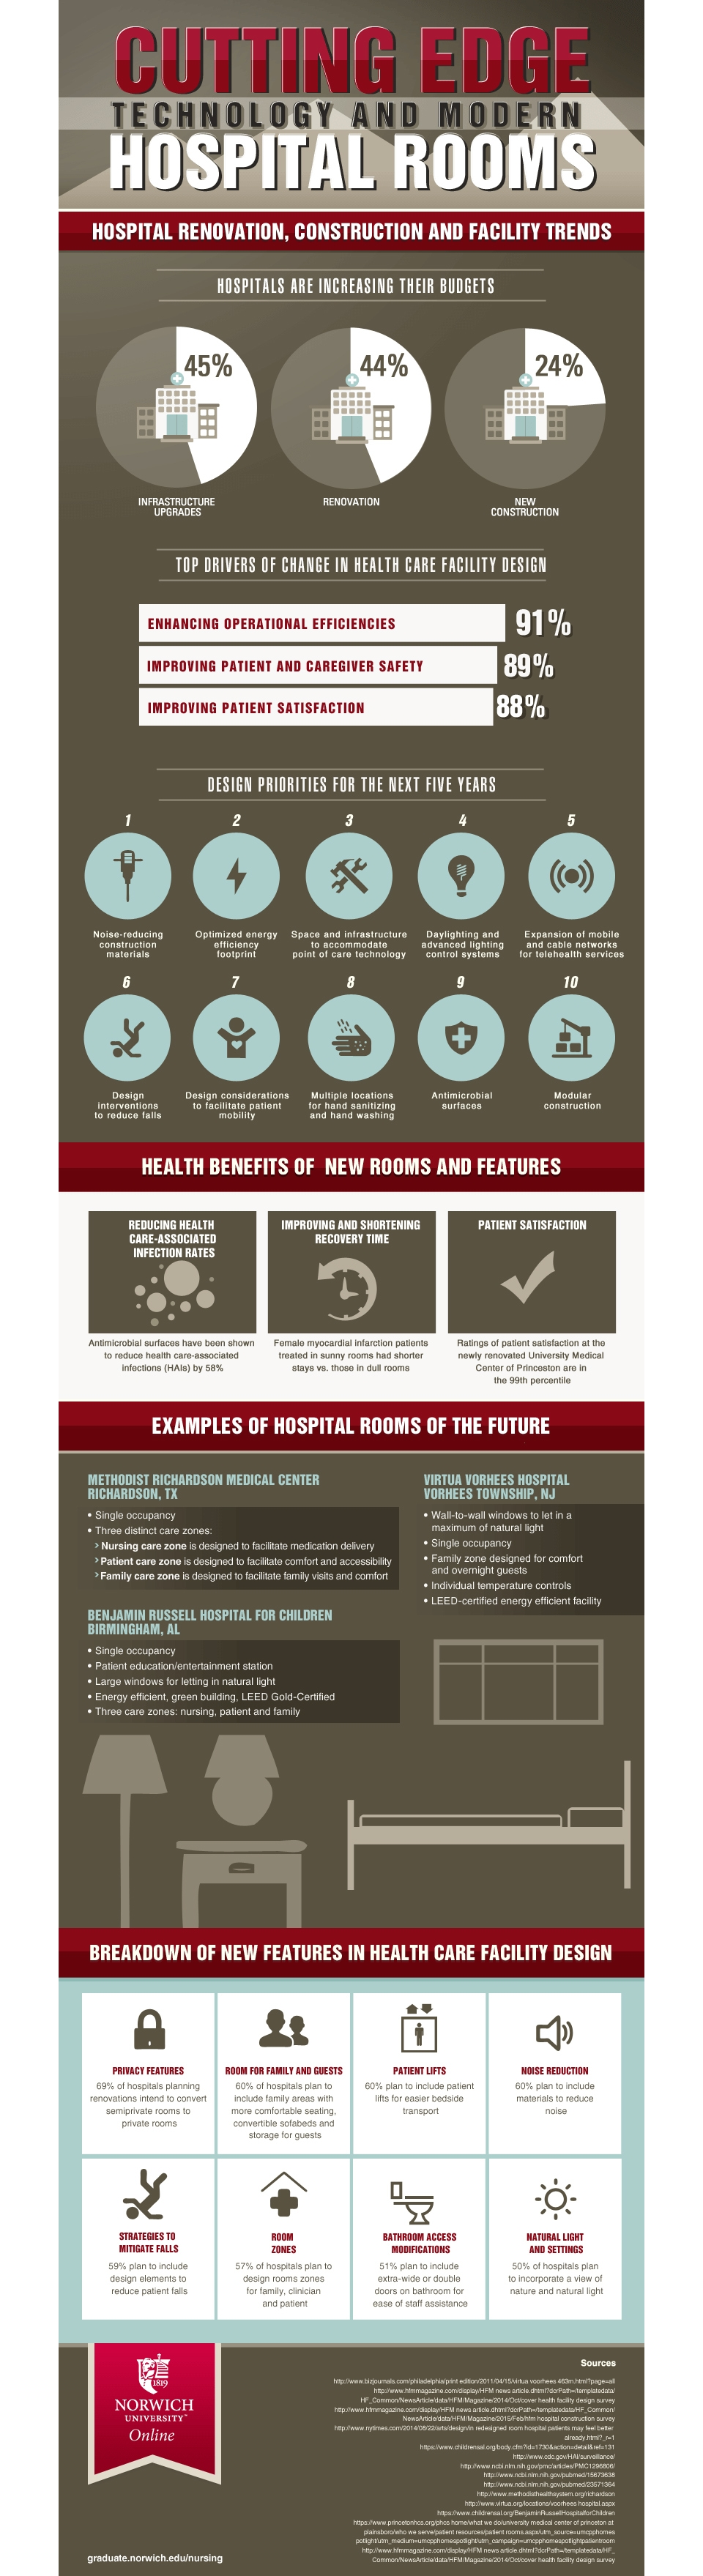 cutting edge hospital technologies infographic image